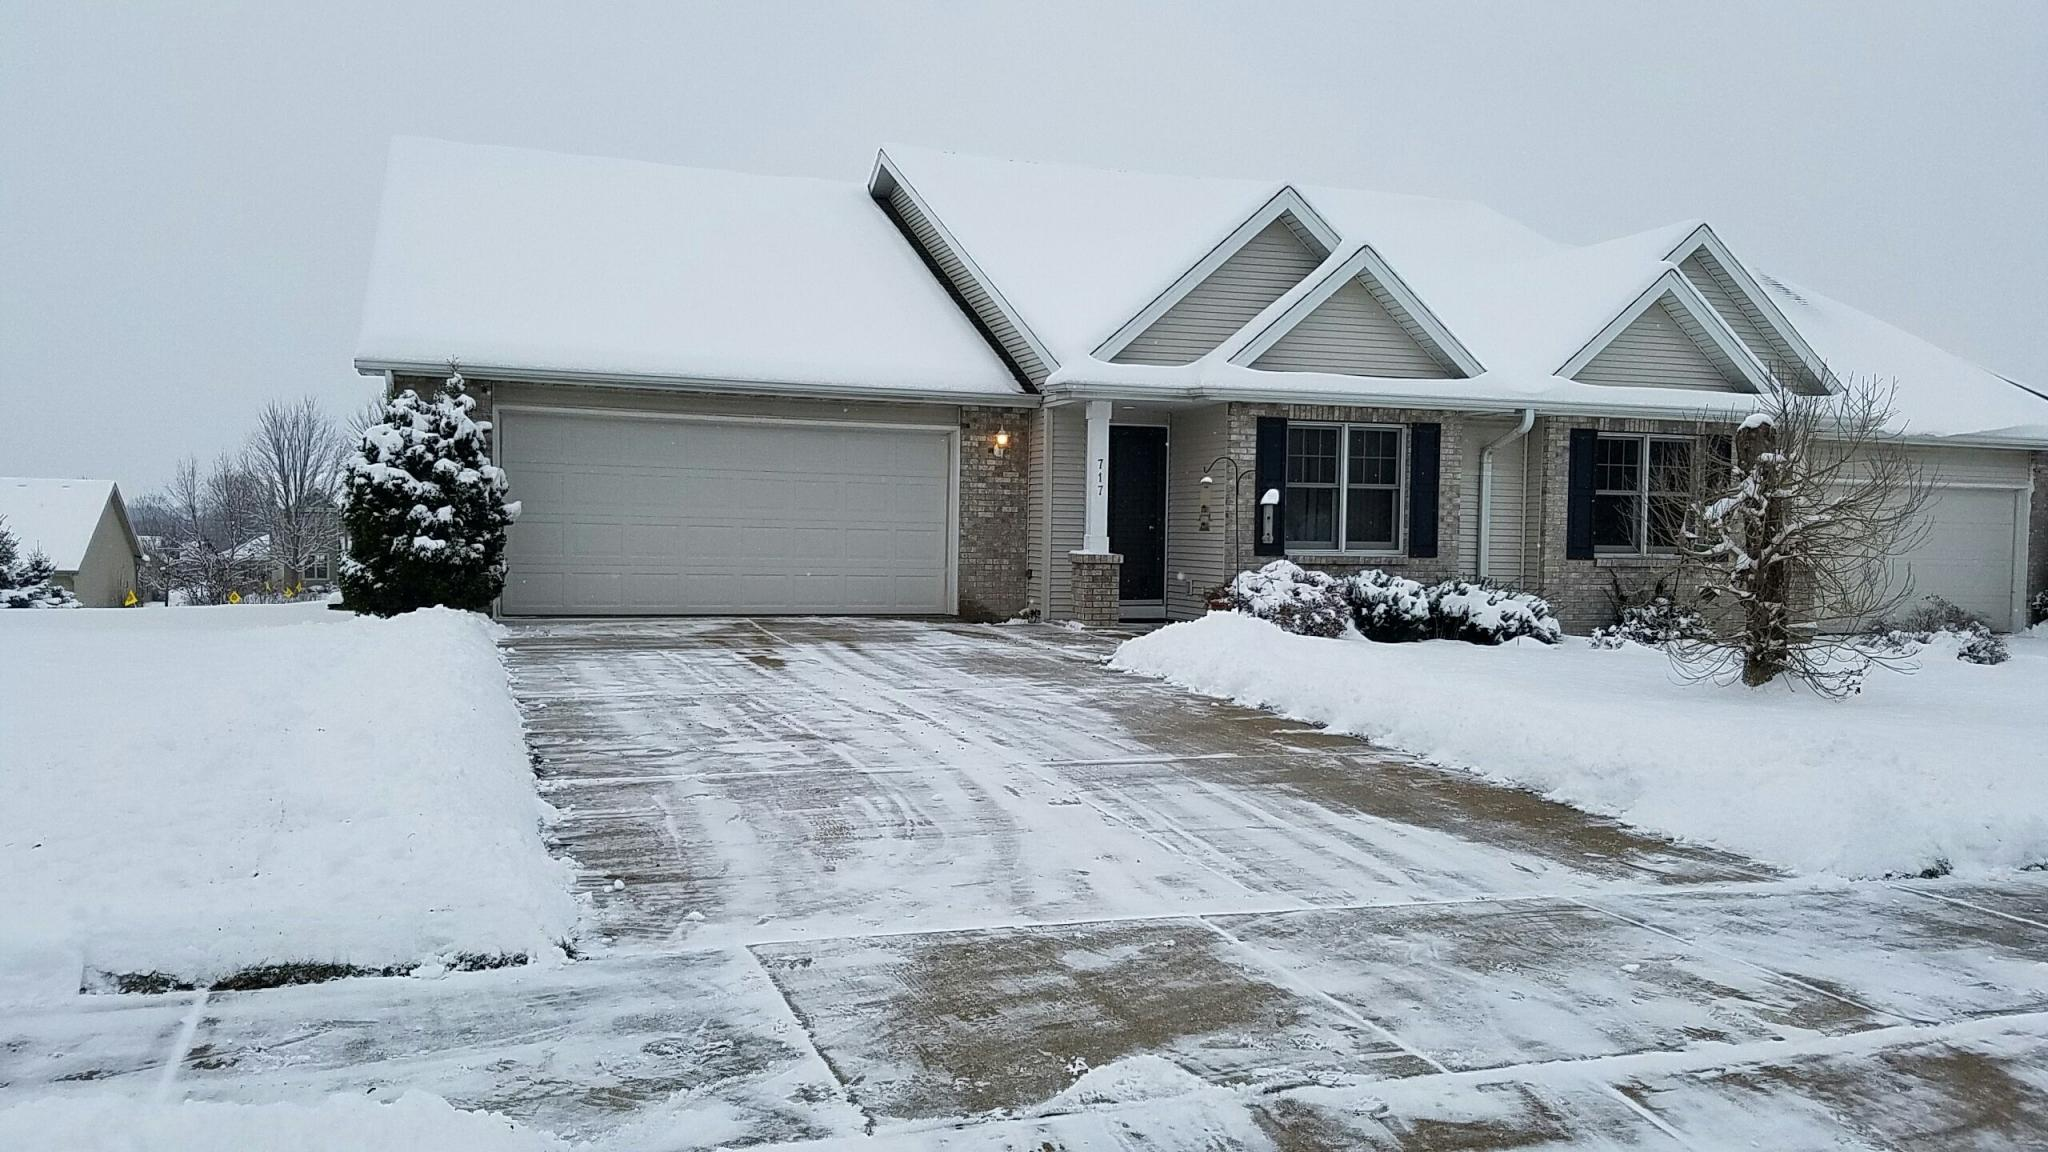 717 Herndon Dr For Rent - Madison, WI | Trulia